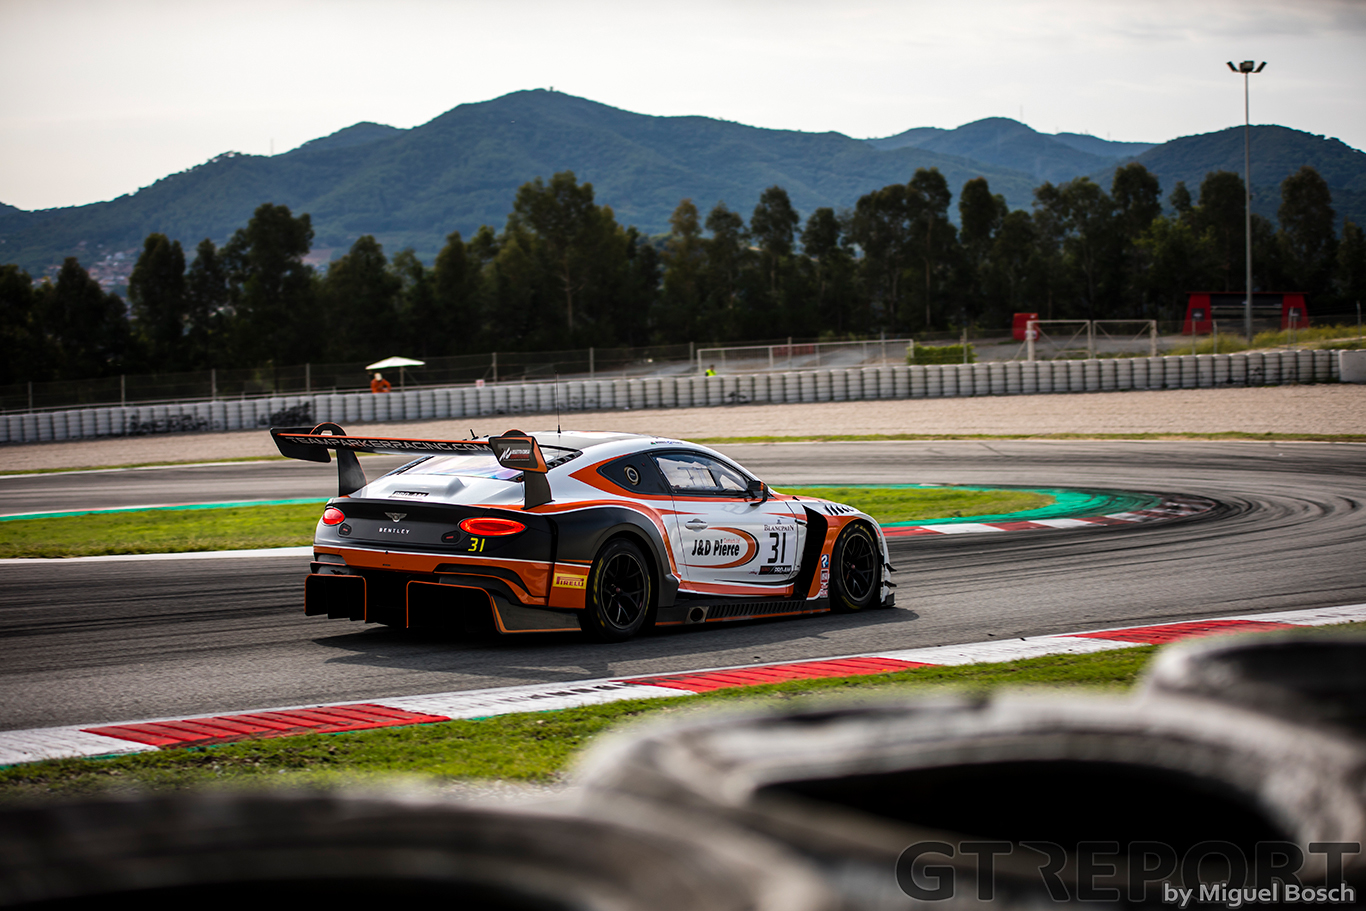 Blancpain GT Barcelona pre-race notebook